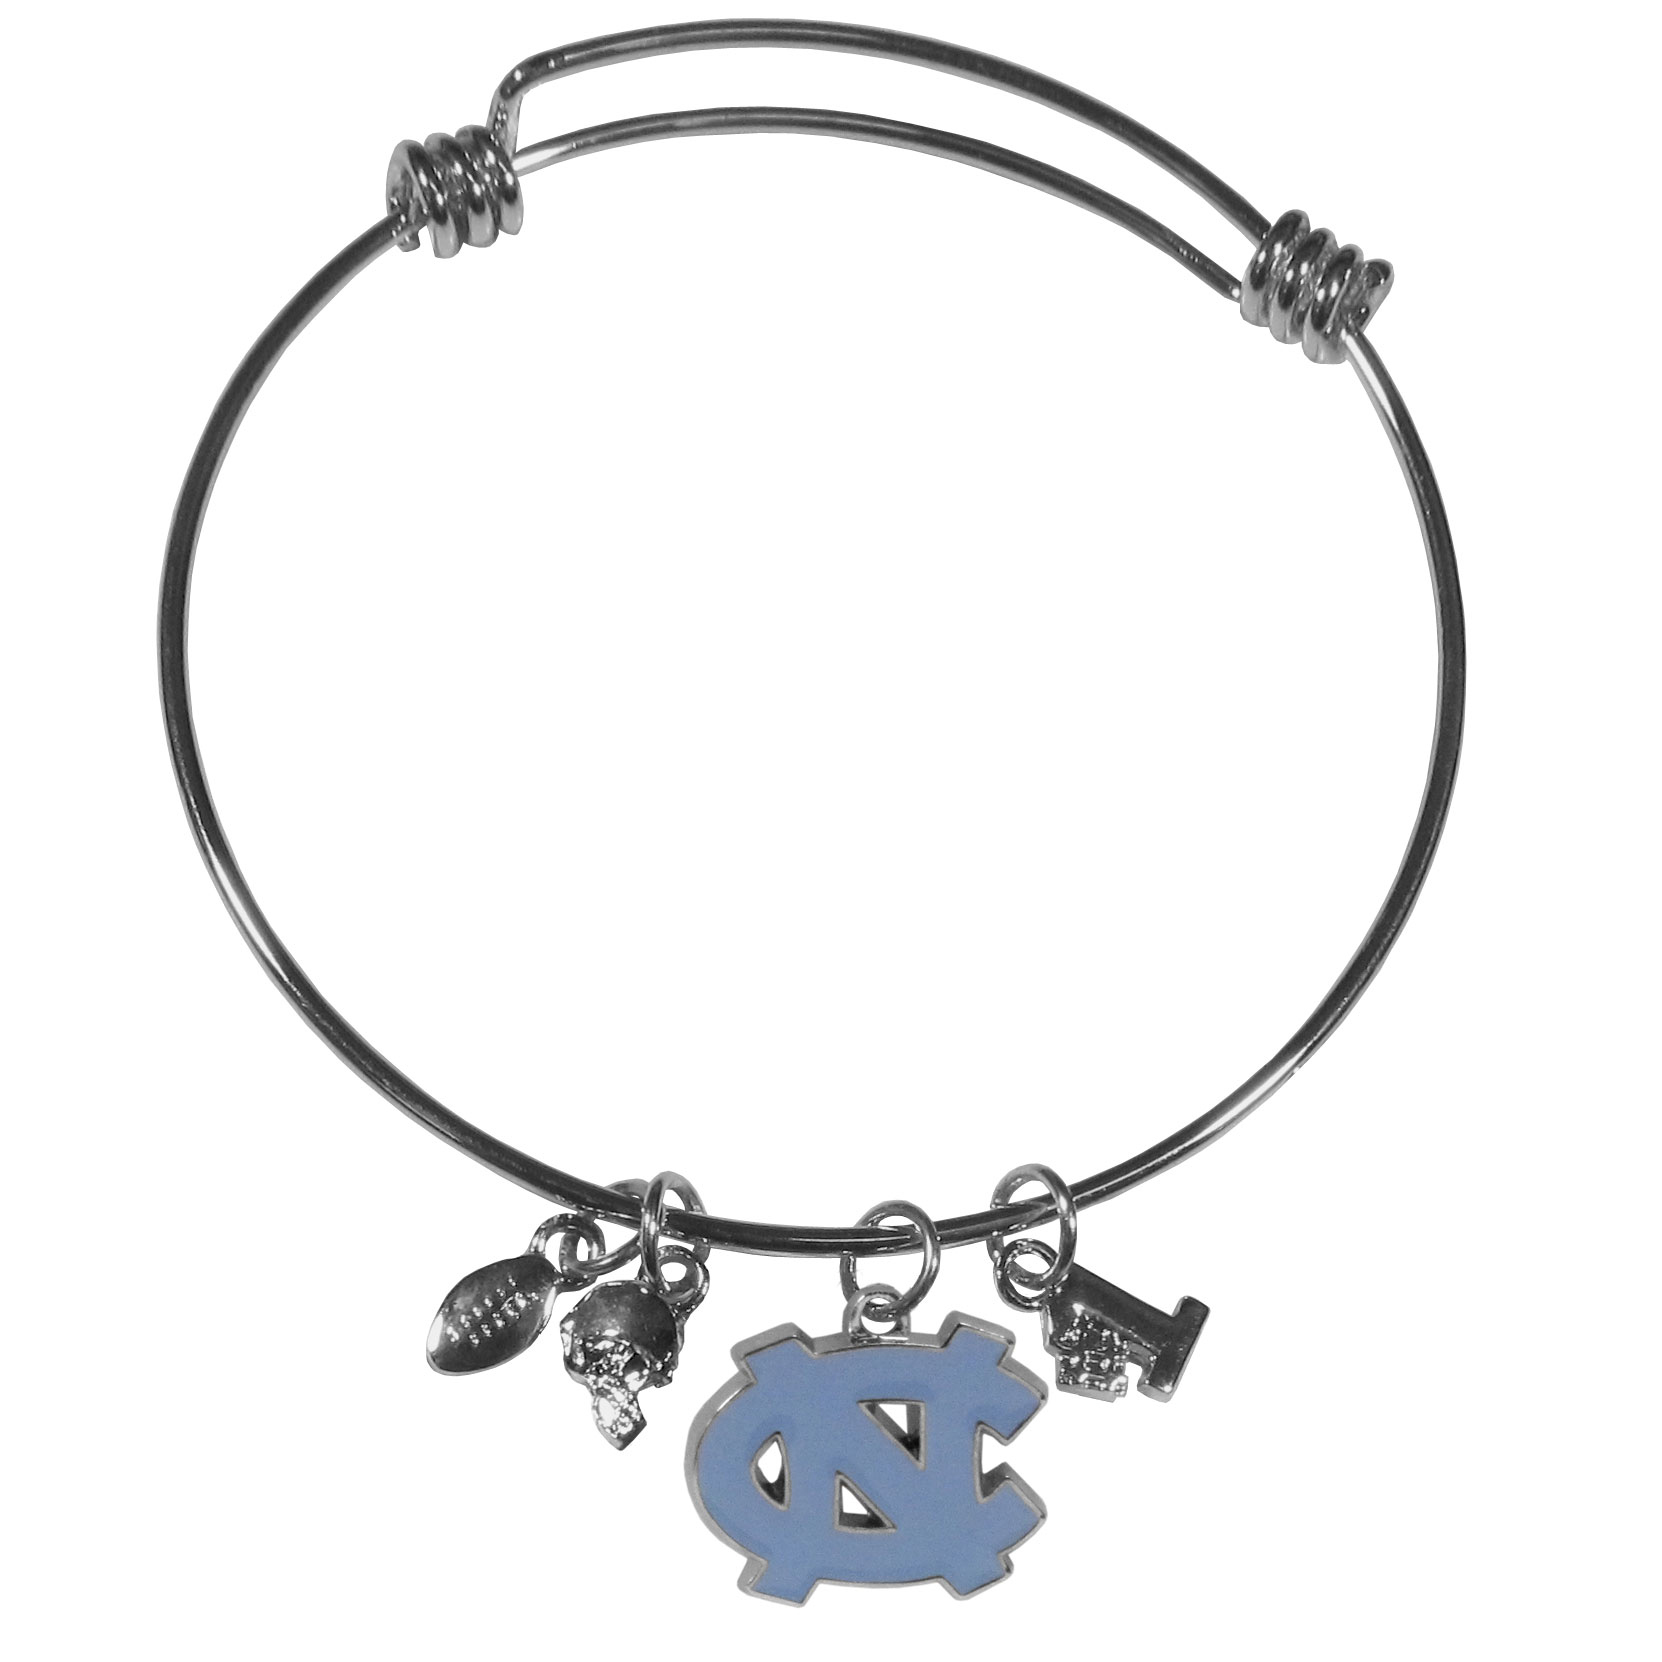 N. Carolina Tar Heels Charm Bangle Bracelet - Adjustable wire bracelets are all the rage and this N. Carolina Tar Heels bracelet matches the popular trend with your beloved team. The bracelet features 4 charms in total, each feature exceptional detail and the team charm has enameled team colors.